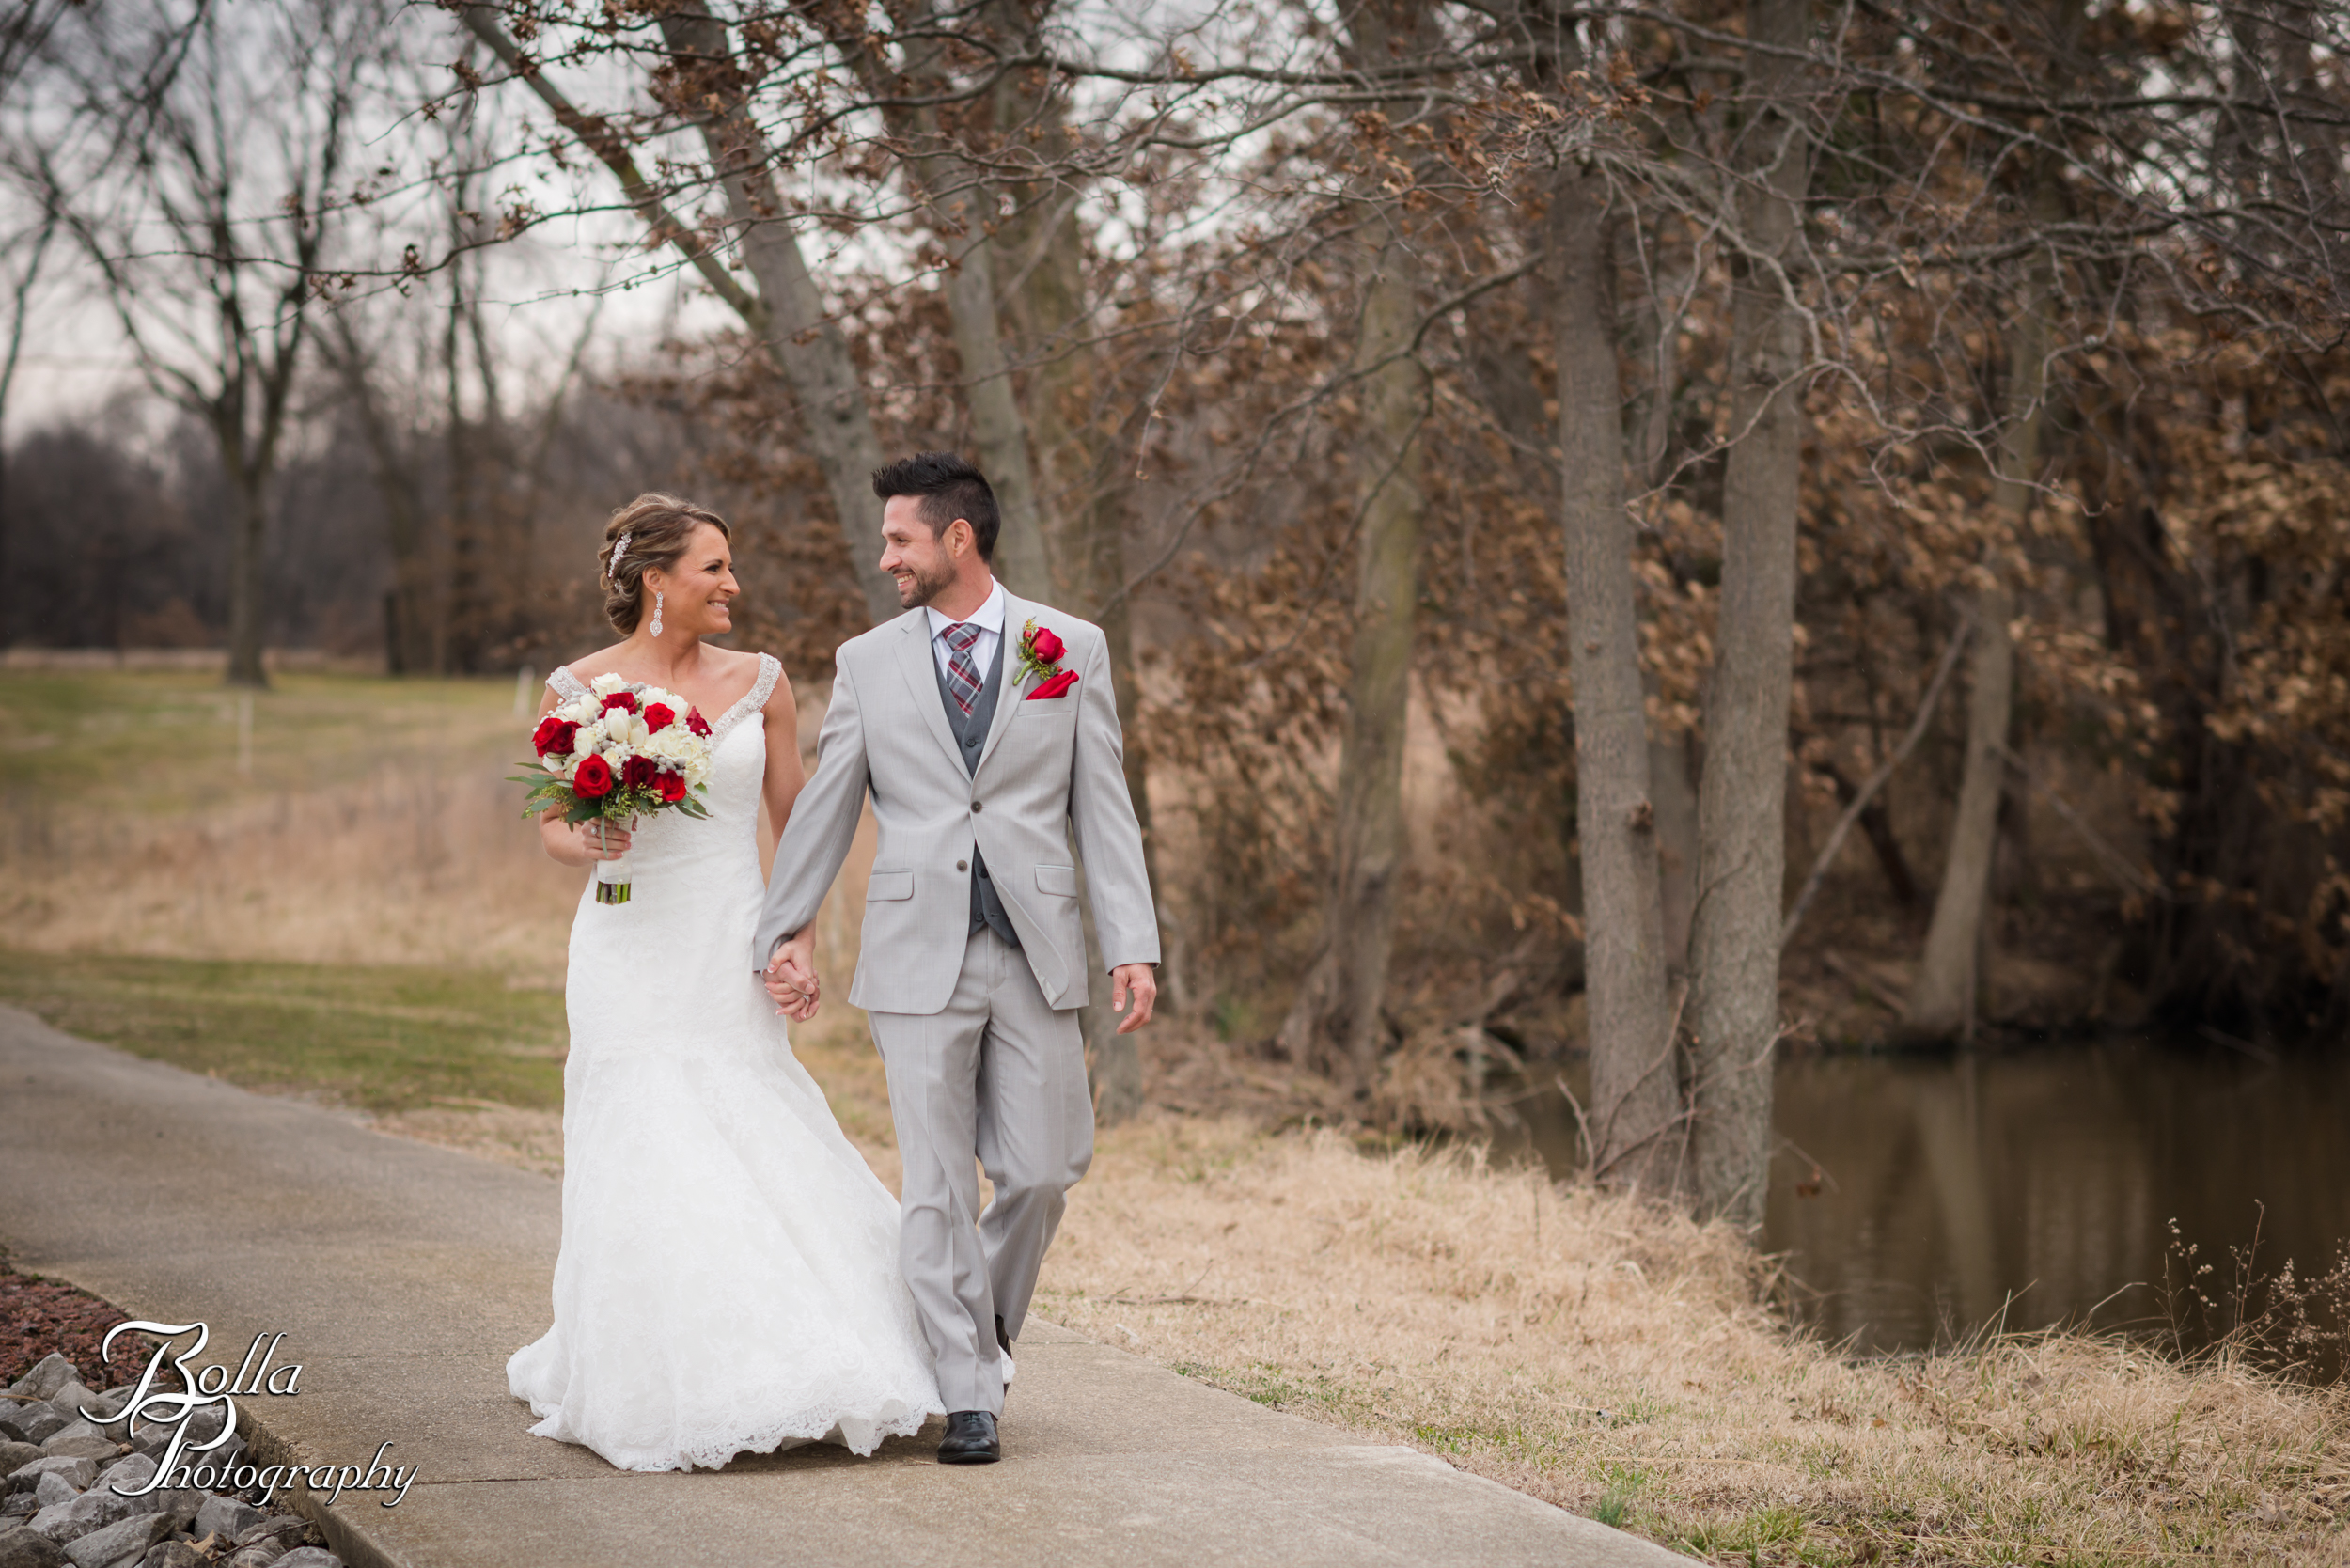 Bolla_photography_edwardsville_wedding_photographer_st_louis_weddings_highland_Allen_Warren_winter_red-0005.jpg